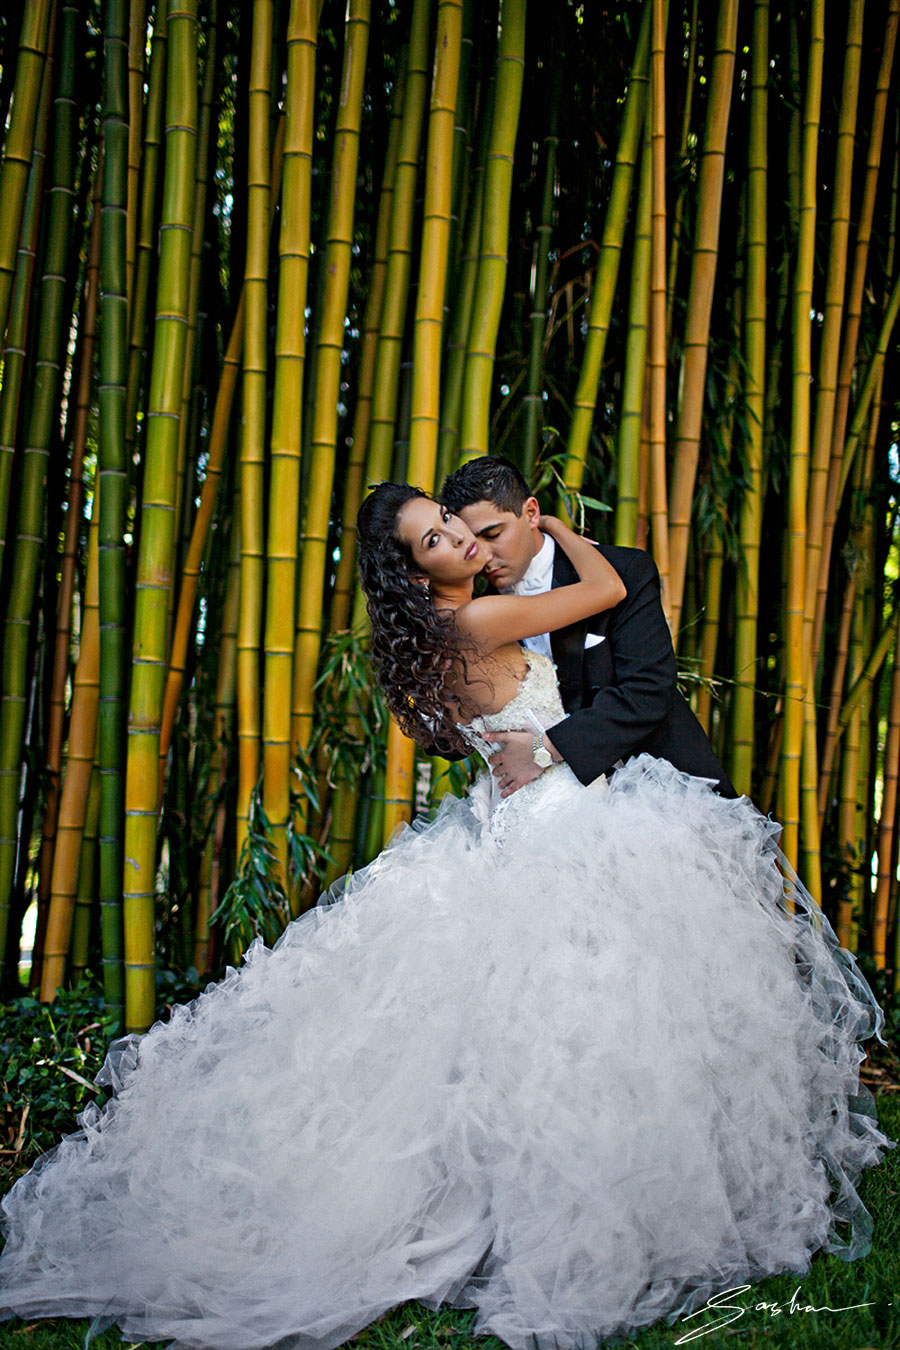 1_Sasha_Photography_bride-groom-bamboo-background